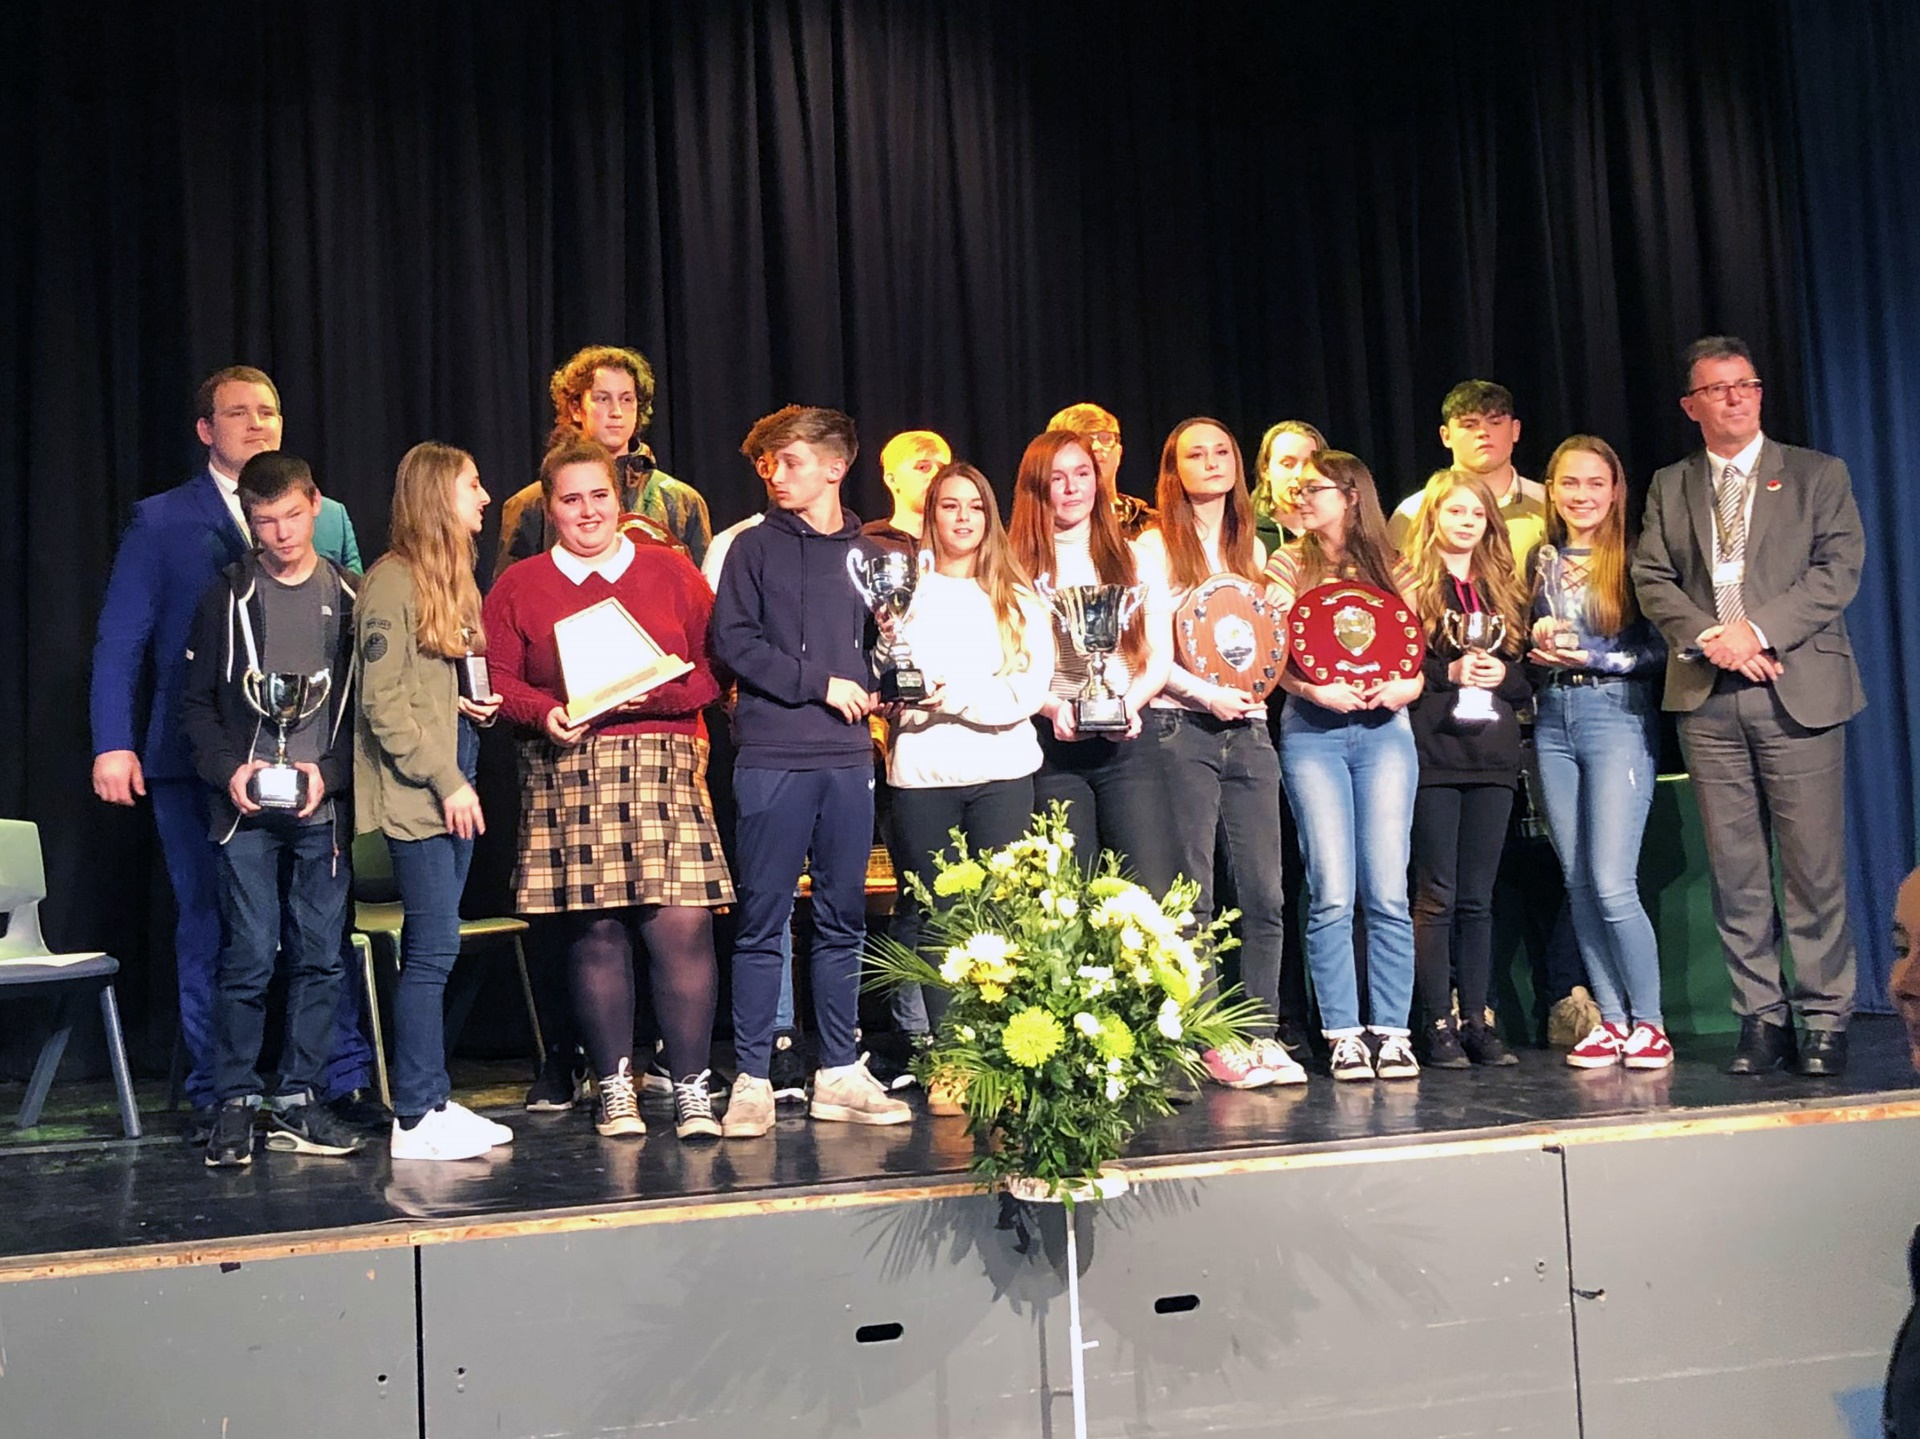 Harrow Way's Stars of 2019 take centre stage at annual Presentation Evening